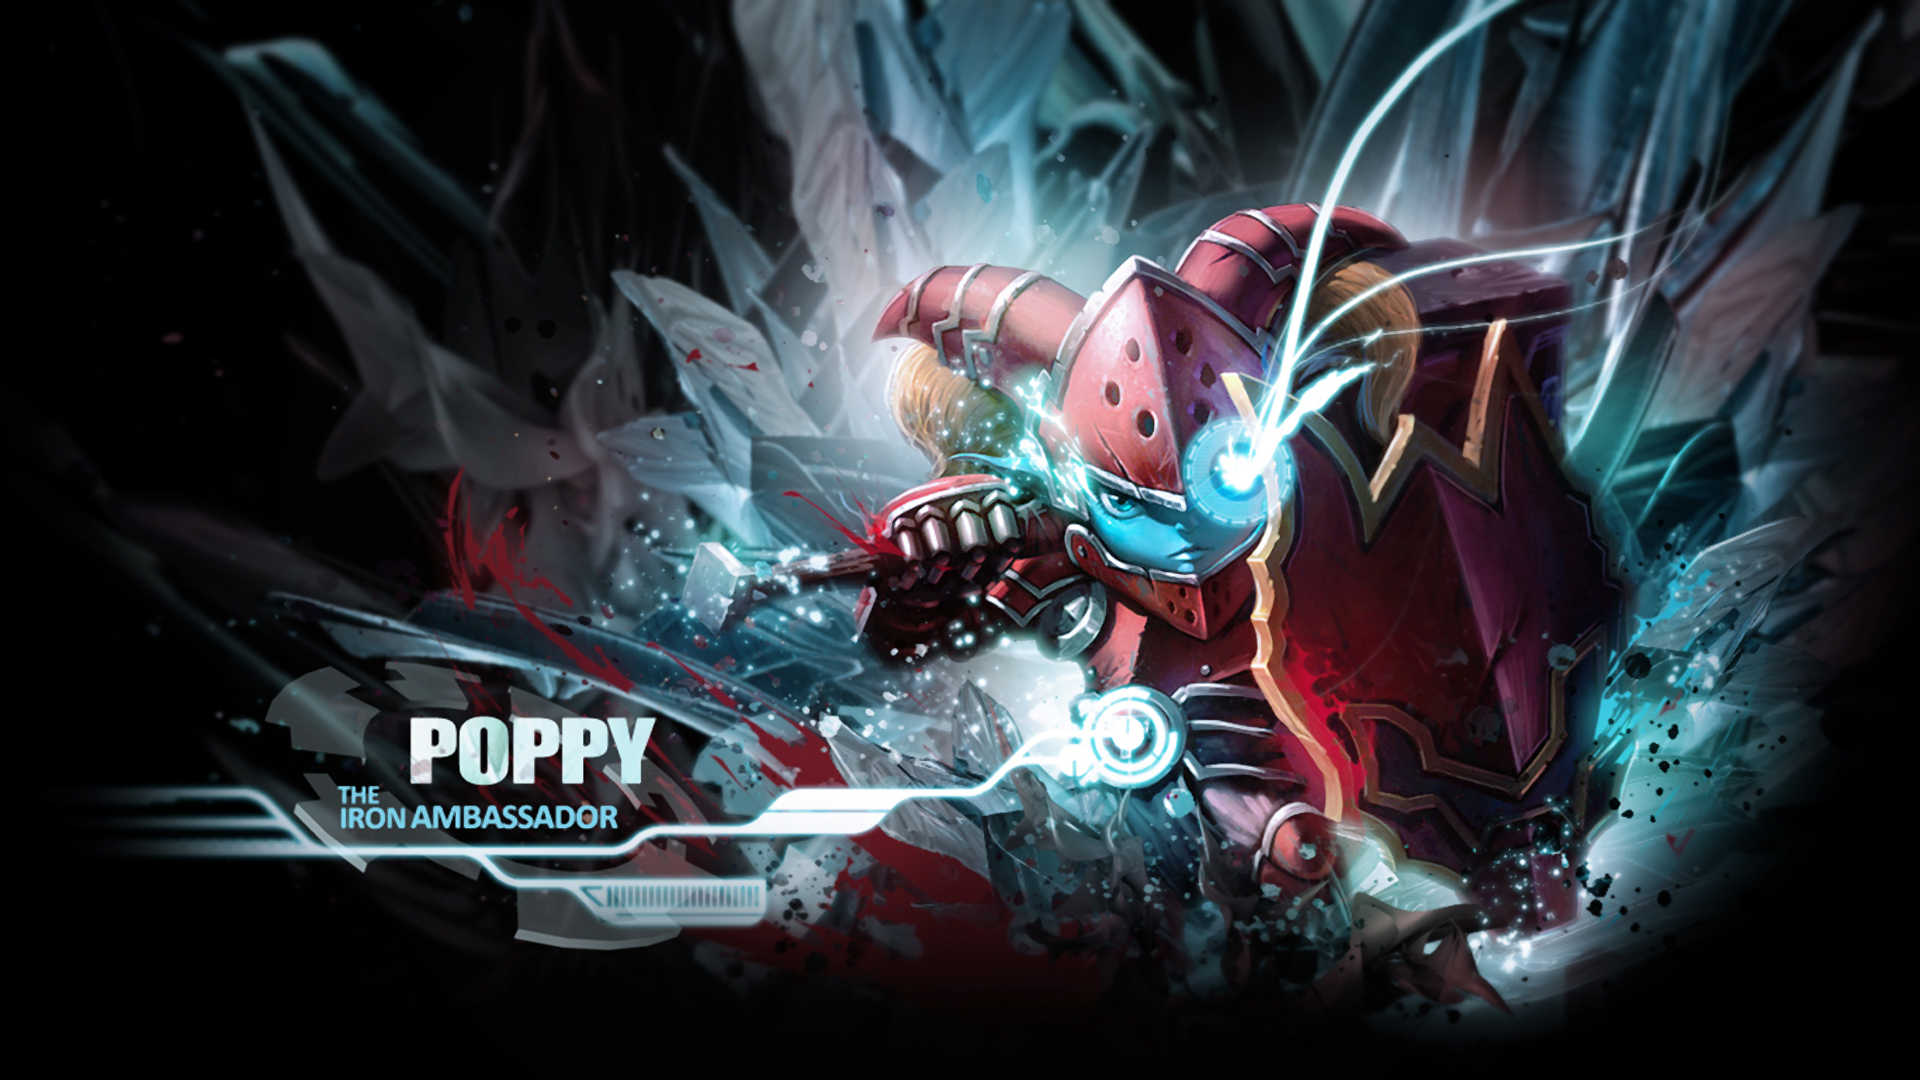 Poppy LoL 19201080 2k Wallpaper HD 1920x1080